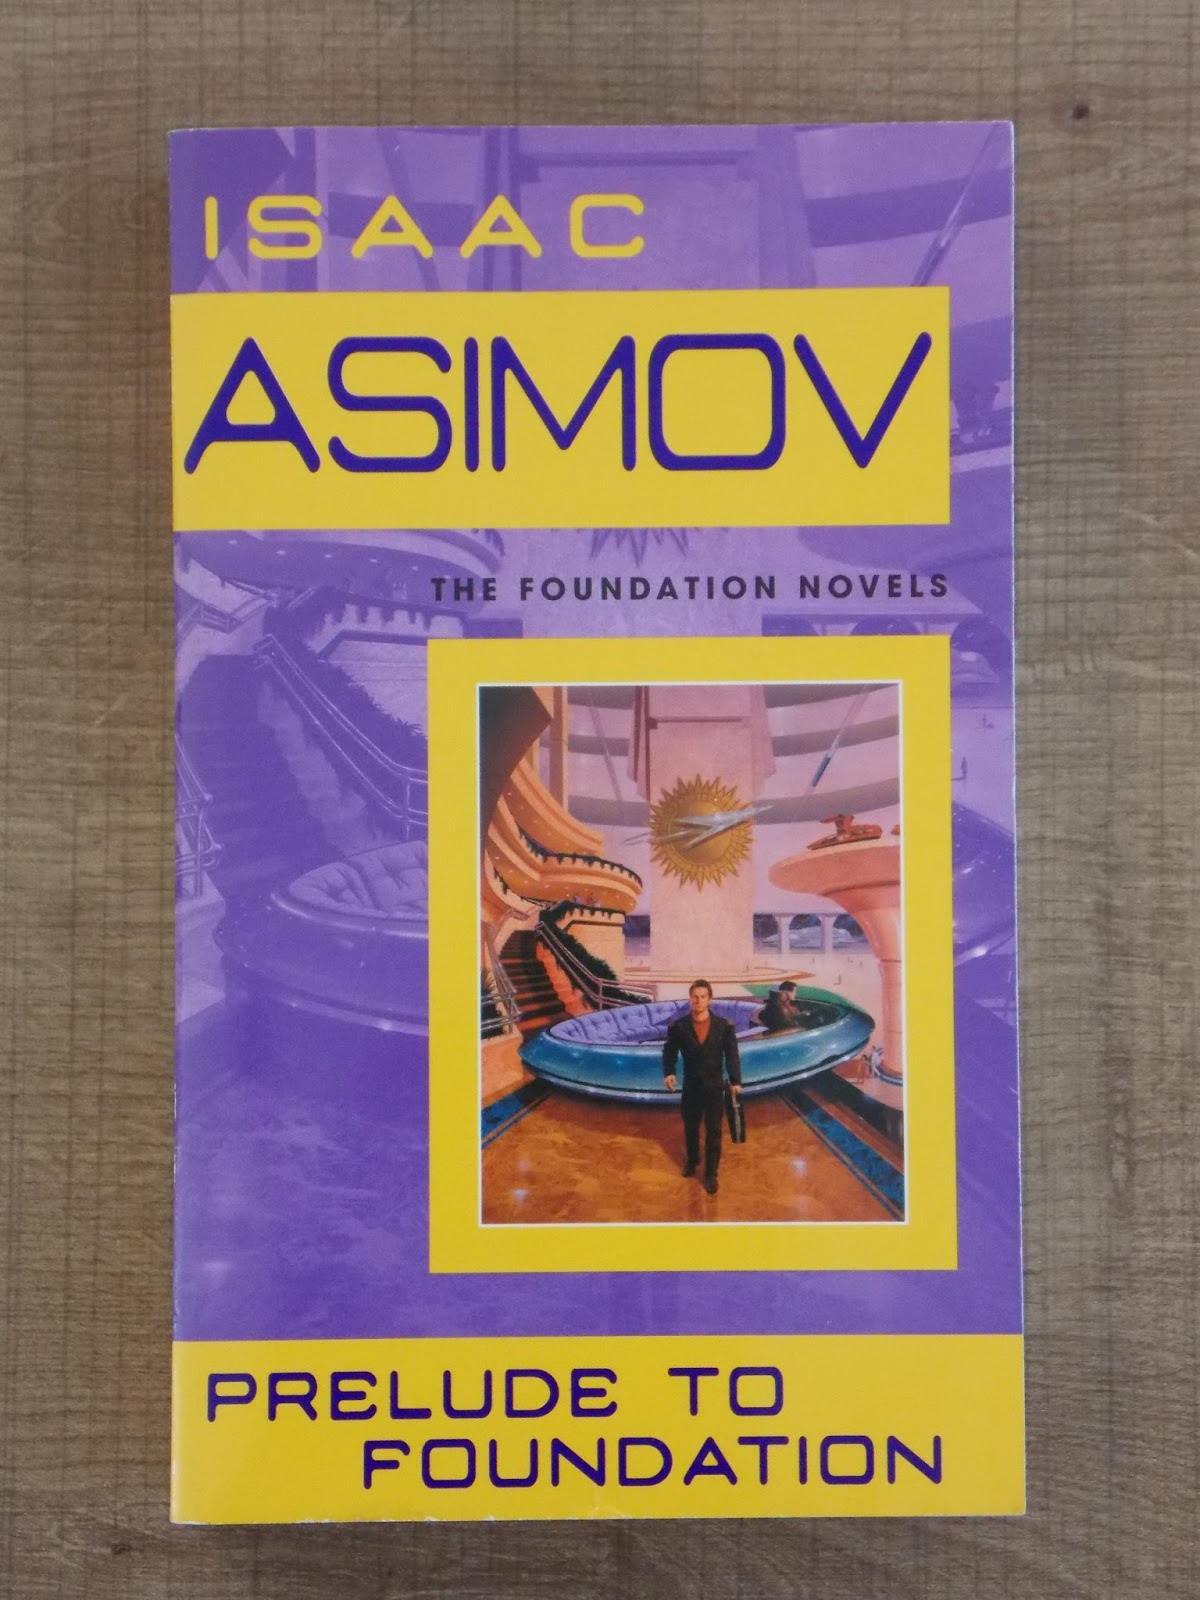 an analysis of prelude to foundation by isaac asimov Isaac asimov's foundation: a holistic analysis of micro and macro plots in the asimov universe - the prequels ― isaac asimov, prelude to foundation.